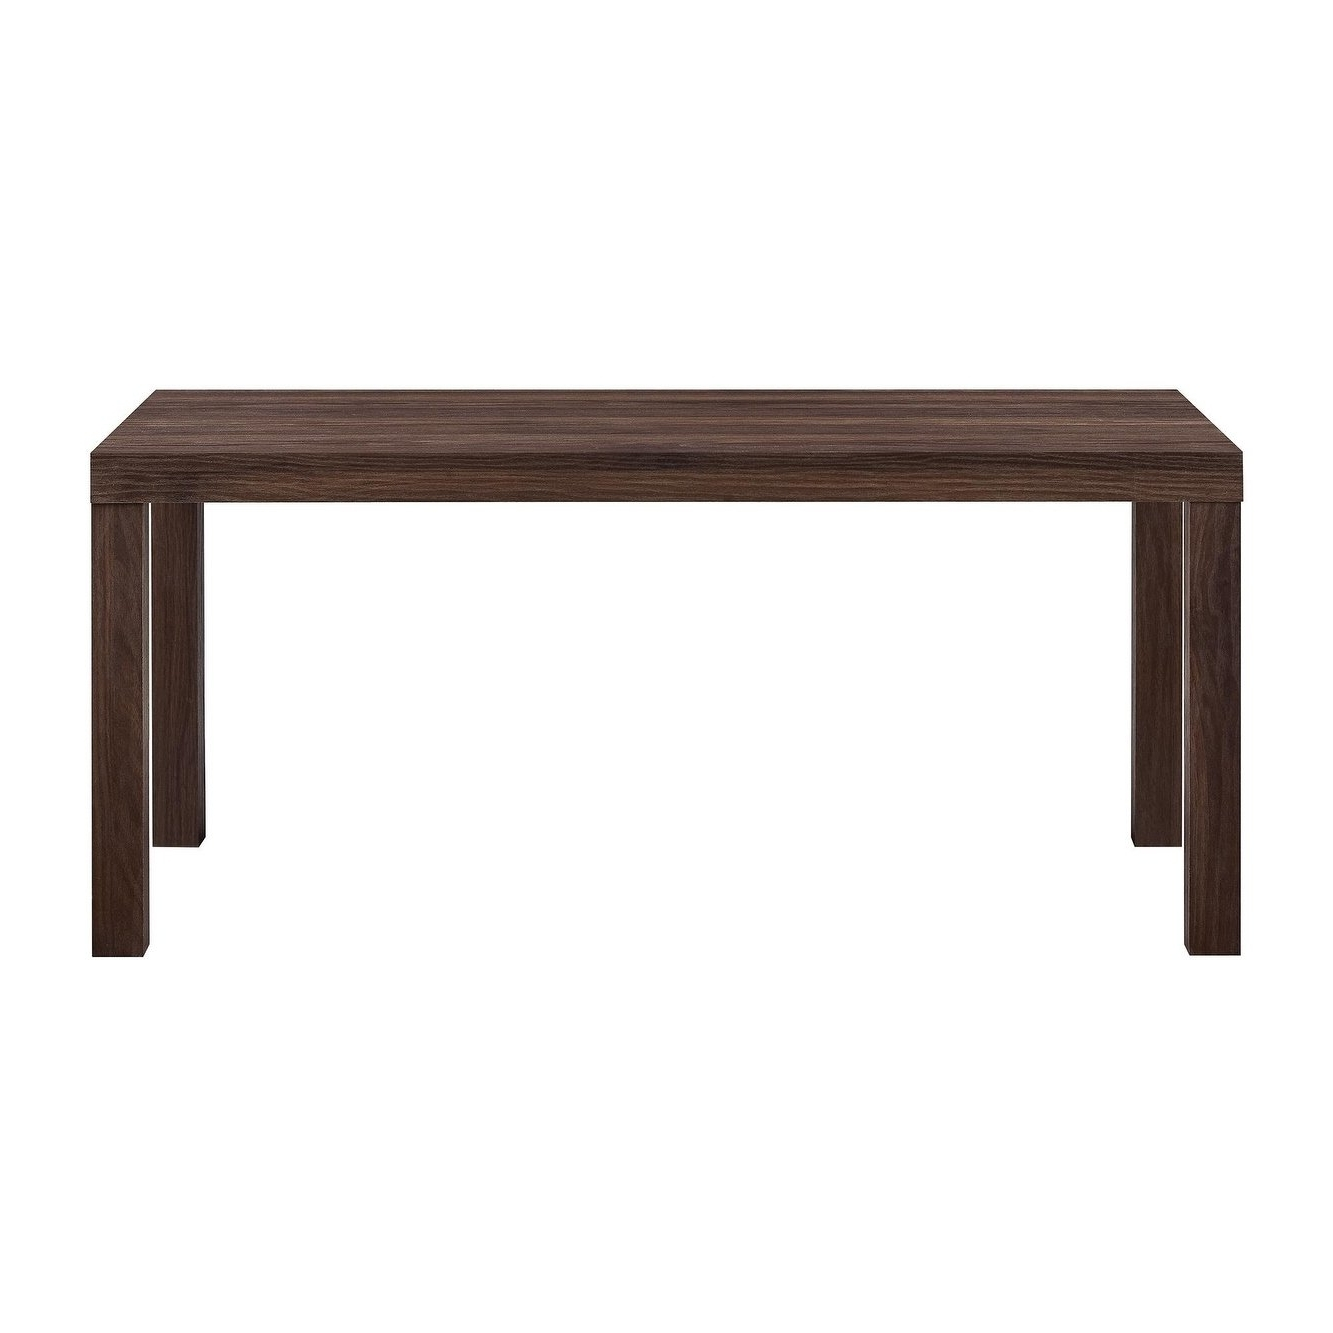 Shop Avenue Greene Jaxon Walnut Coffee Table – Free Shipping Today Within Famous Jaxon Cocktail Tables (View 18 of 20)